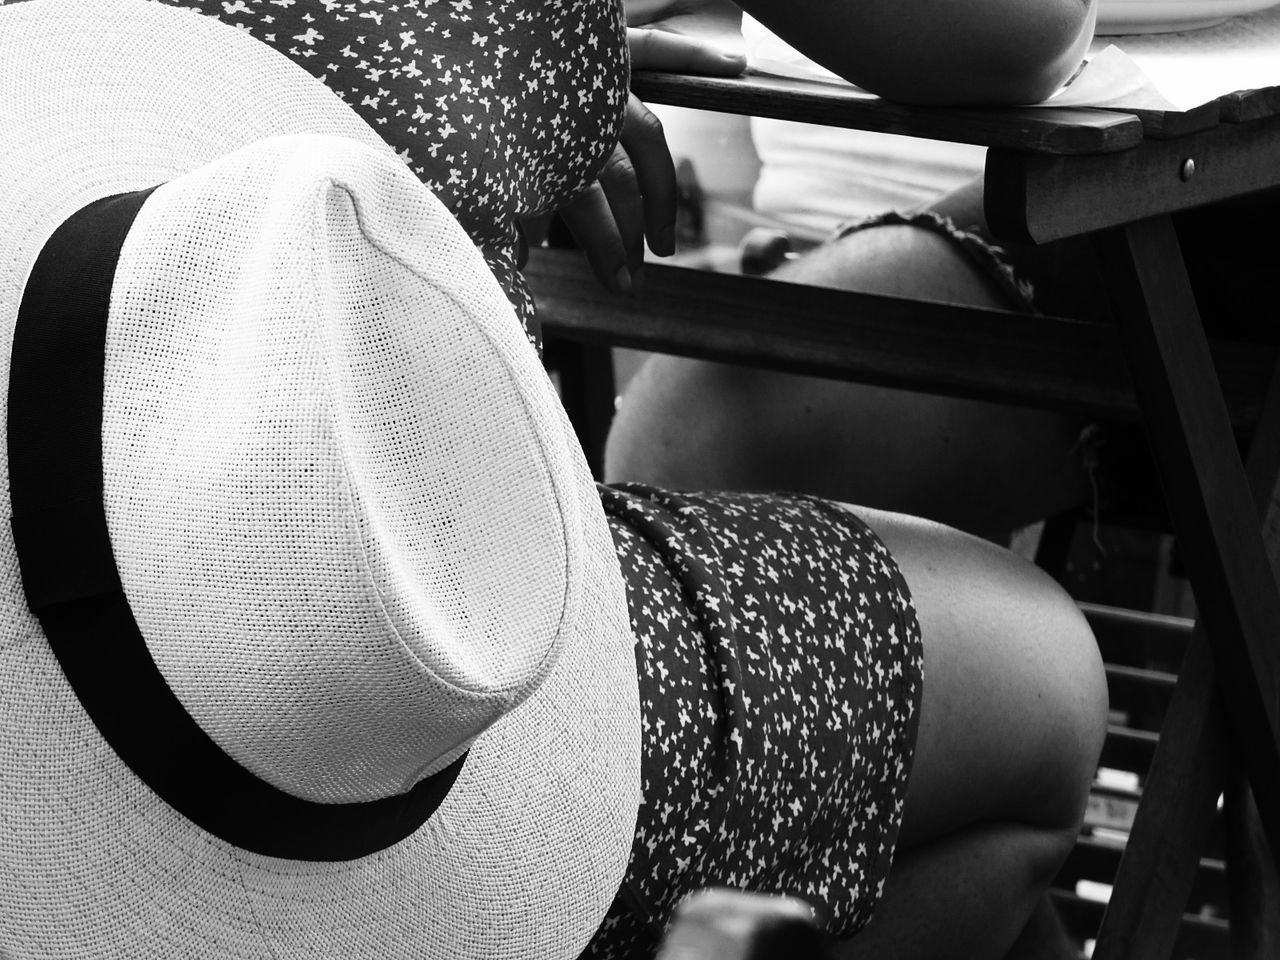 hat, real people, one person, human body part, sun hat, indoors, close-up, lifestyles, women, day, young adult, abdomen, people